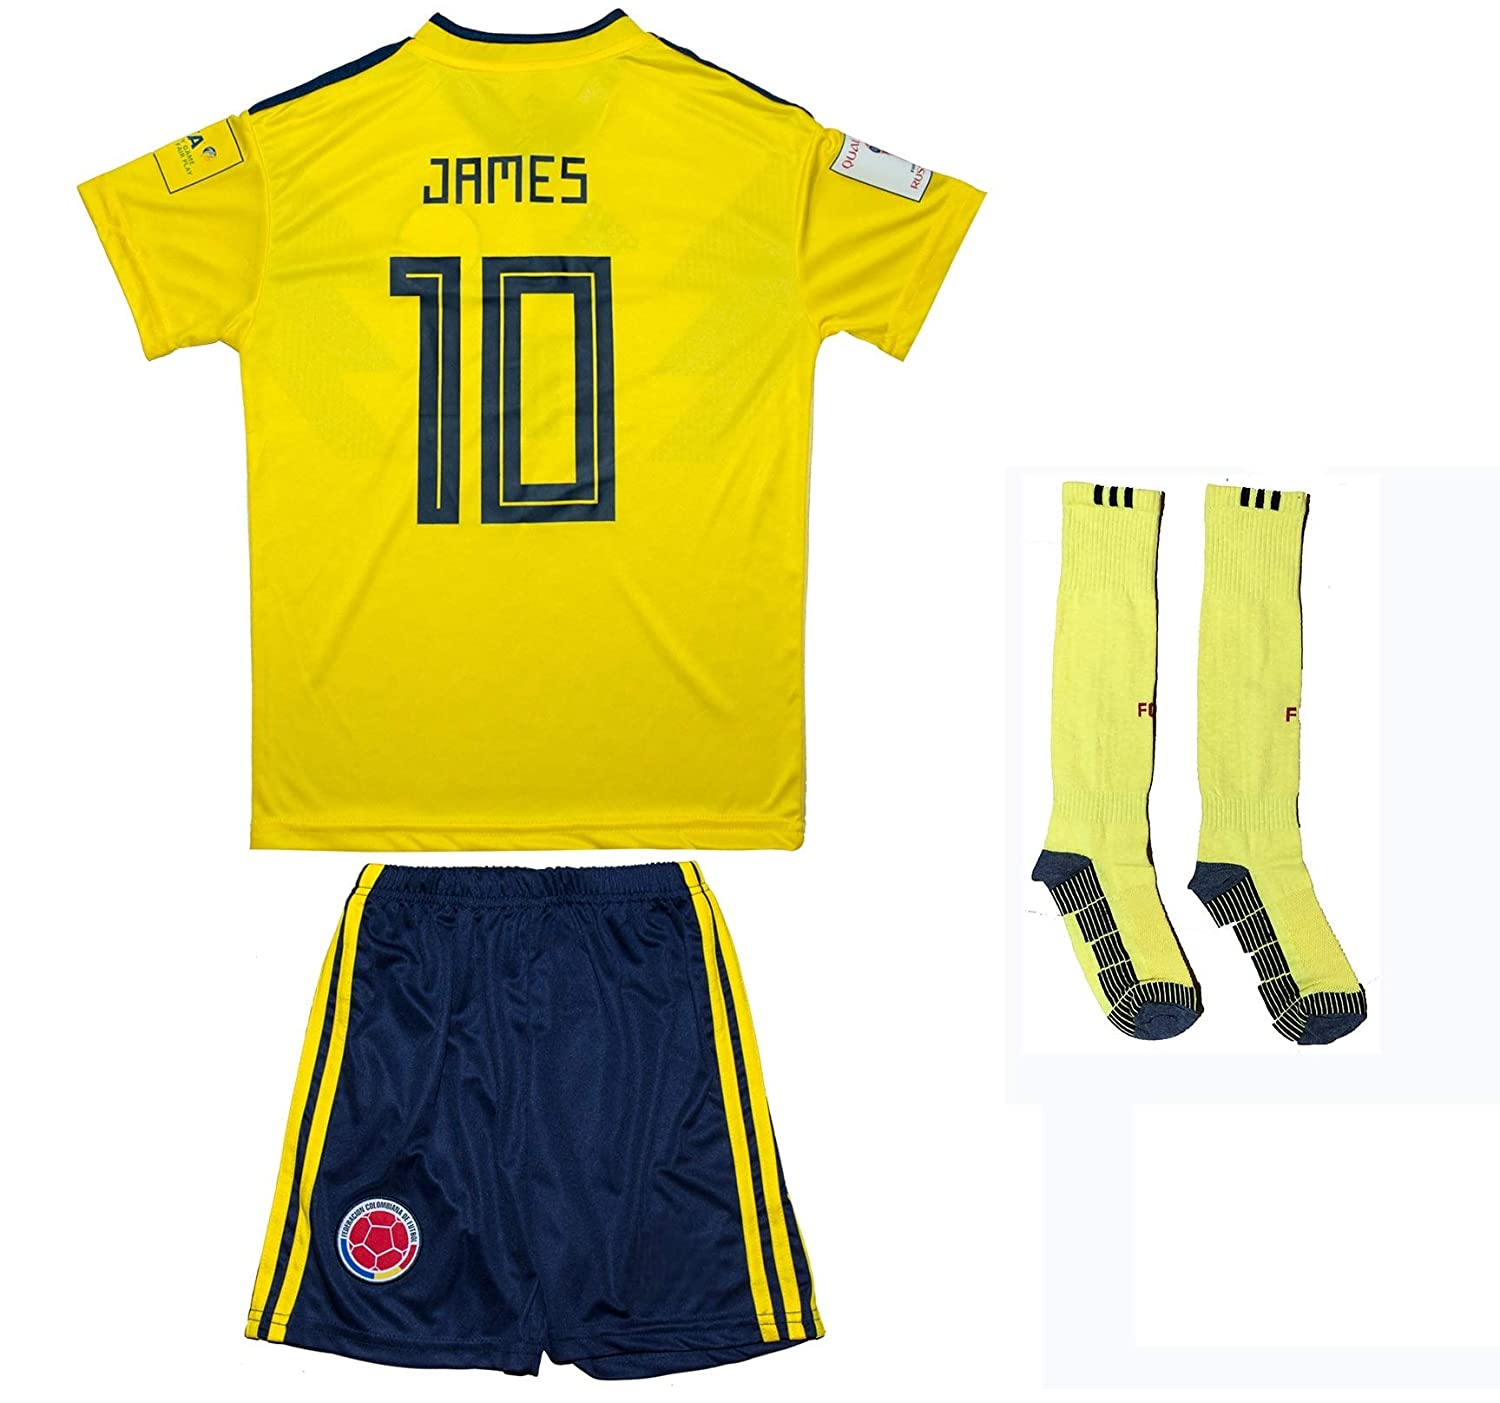 7275a7be739 ... inexpensive amazon soccer youth jersey set colombia home edition sports  outdoors c8e4f 09a72